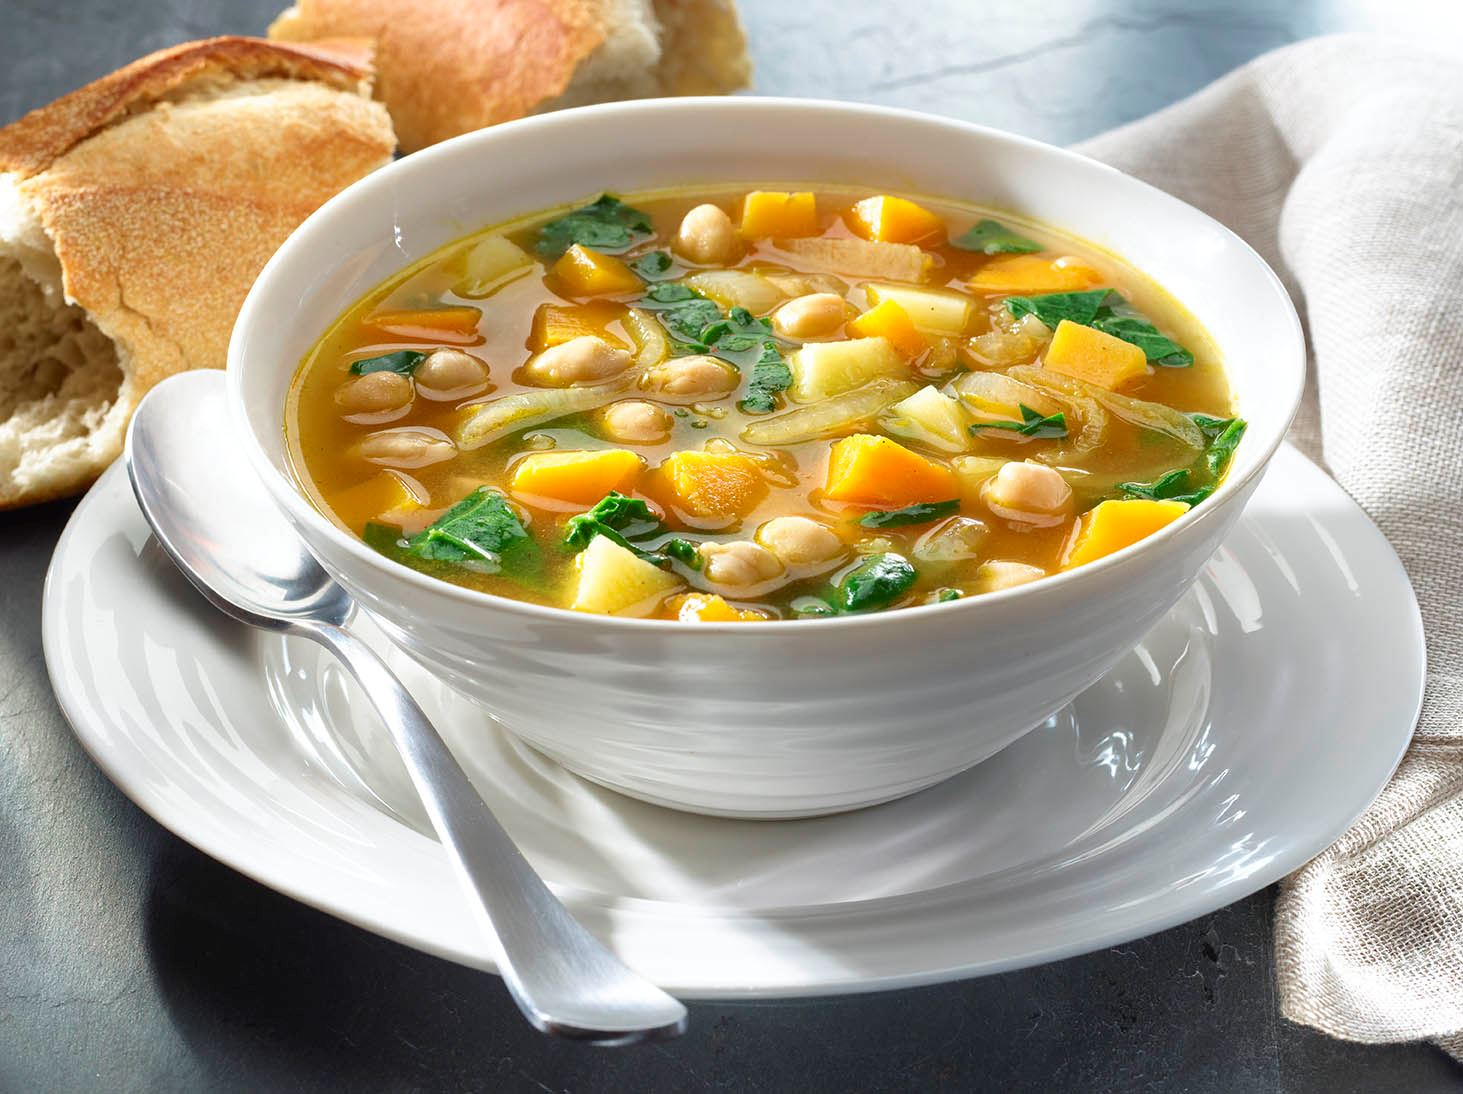 Winter Vegetable and Chick Pea Soup